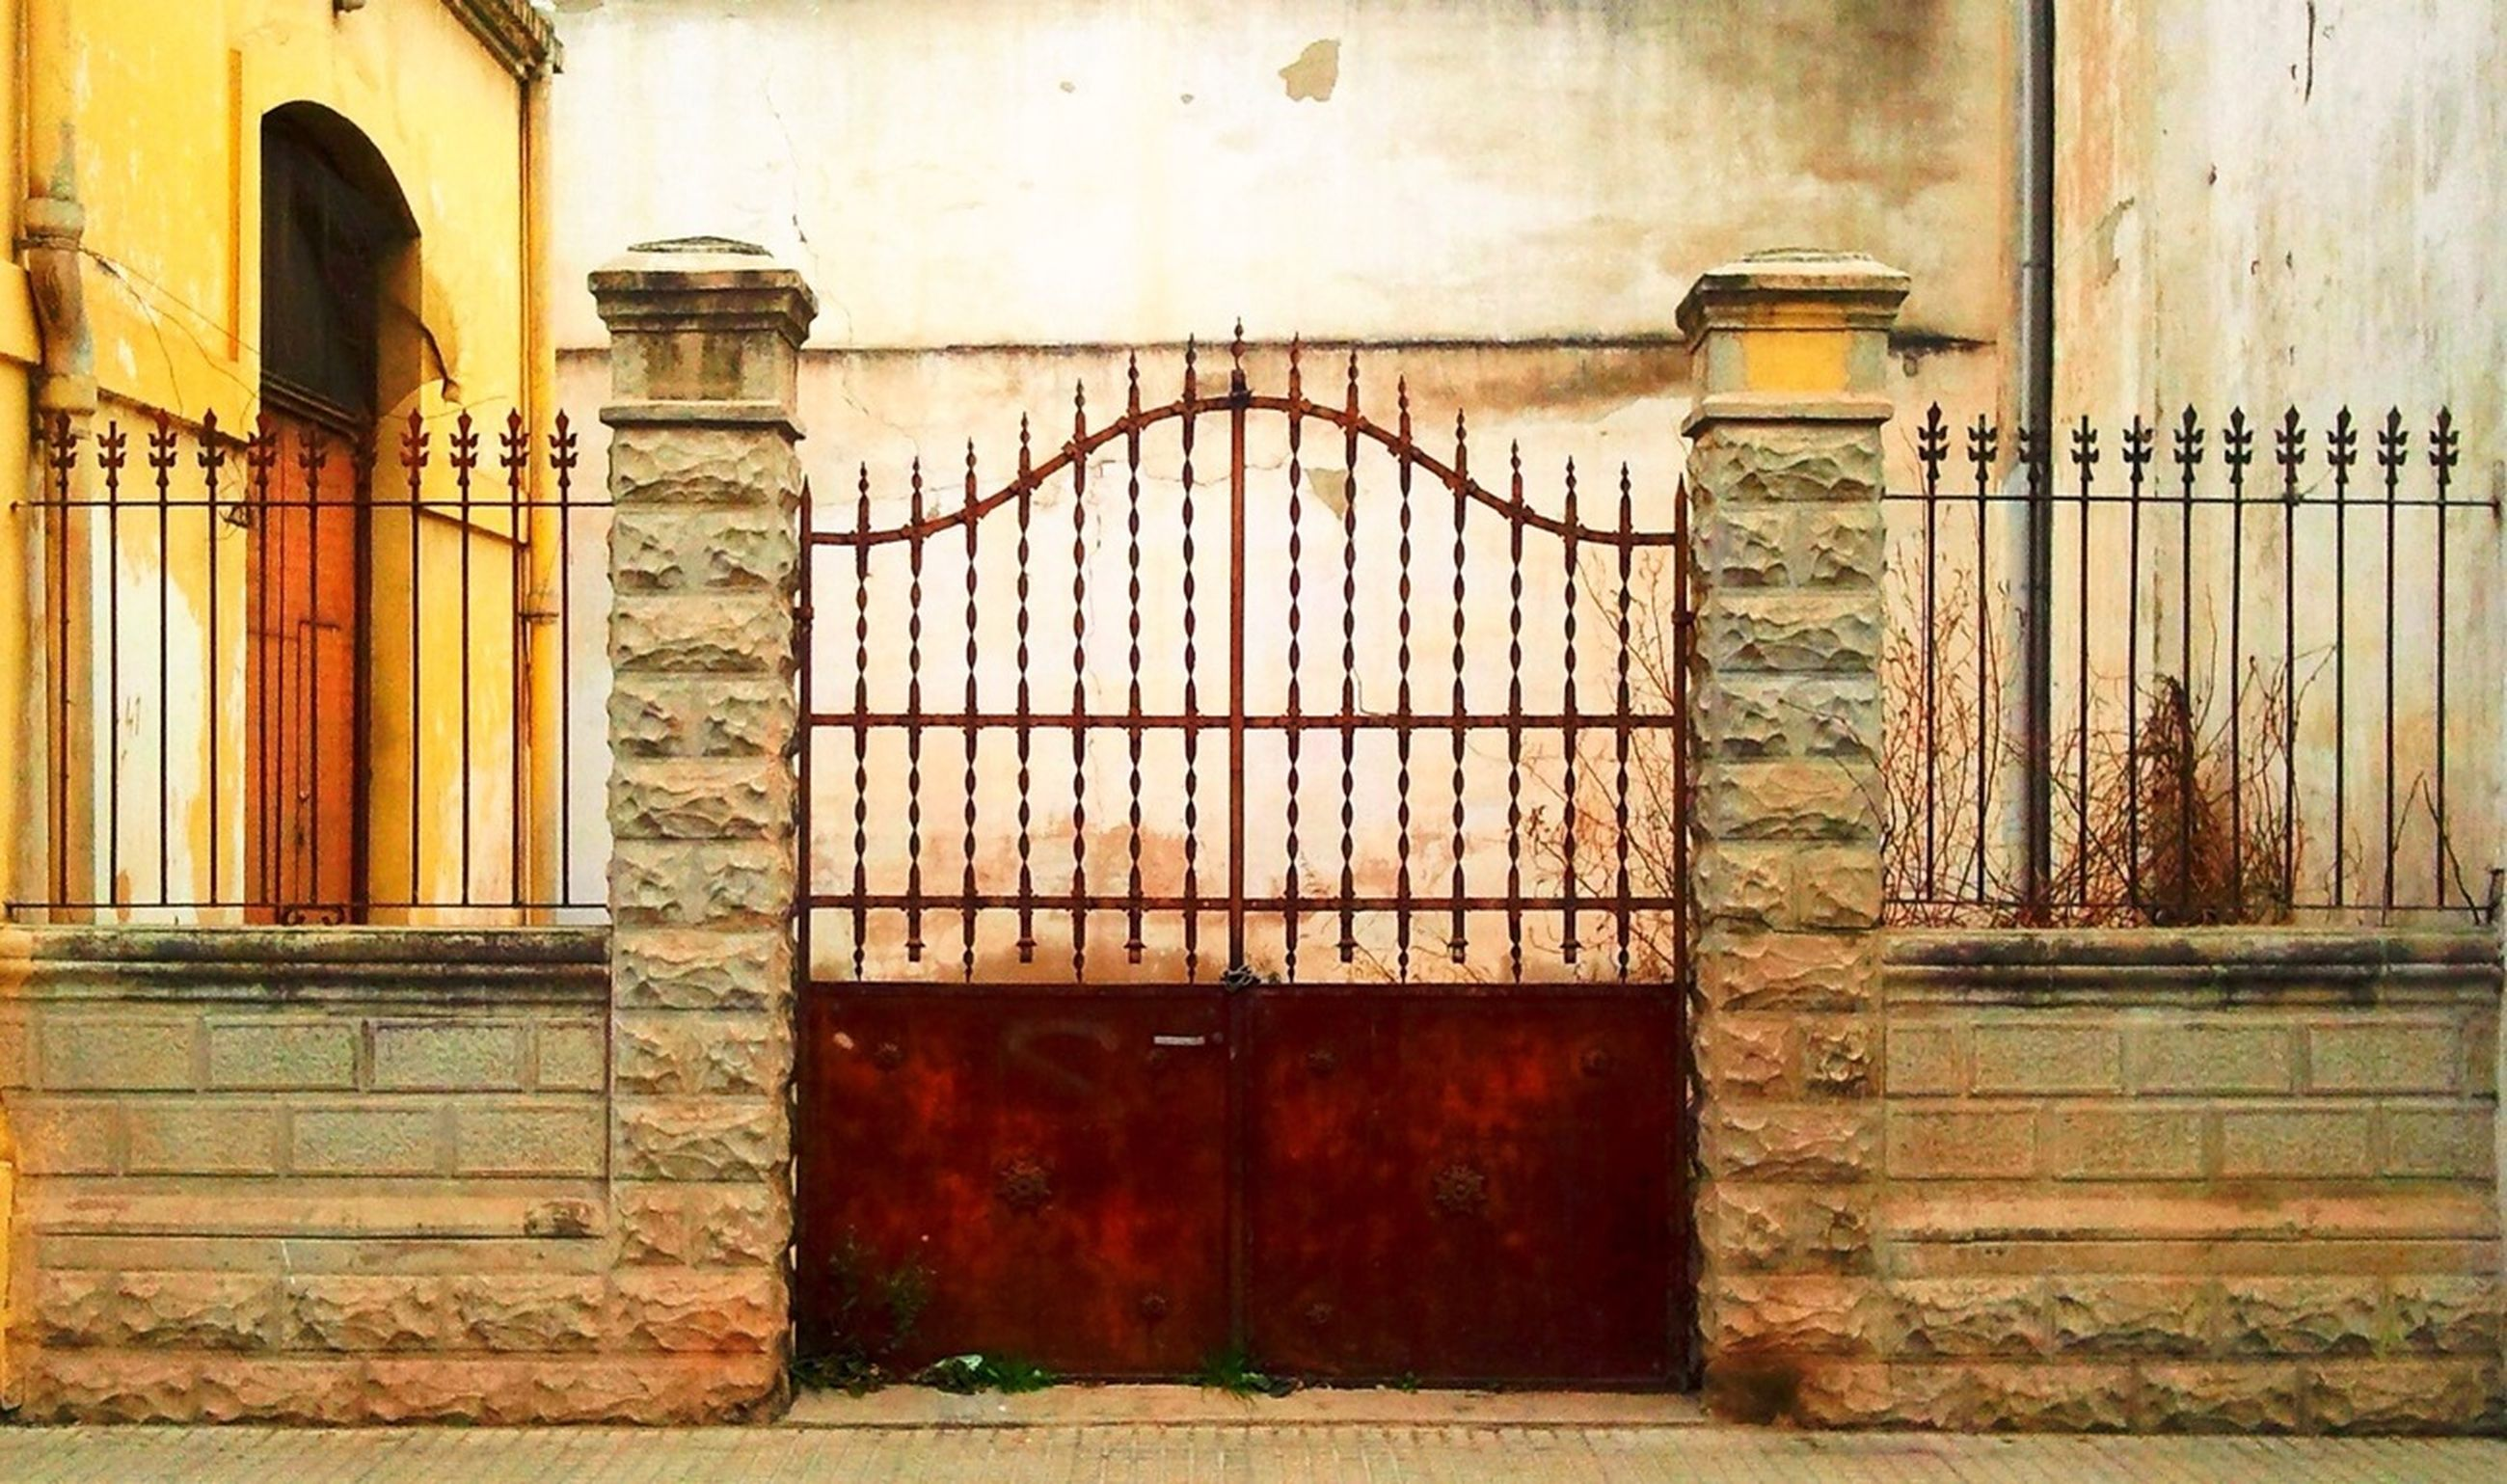 closed, architecture, built structure, door, safety, protection, building exterior, security, metal, entrance, window, house, wall - building feature, gate, wood - material, old, no people, outdoors, day, building